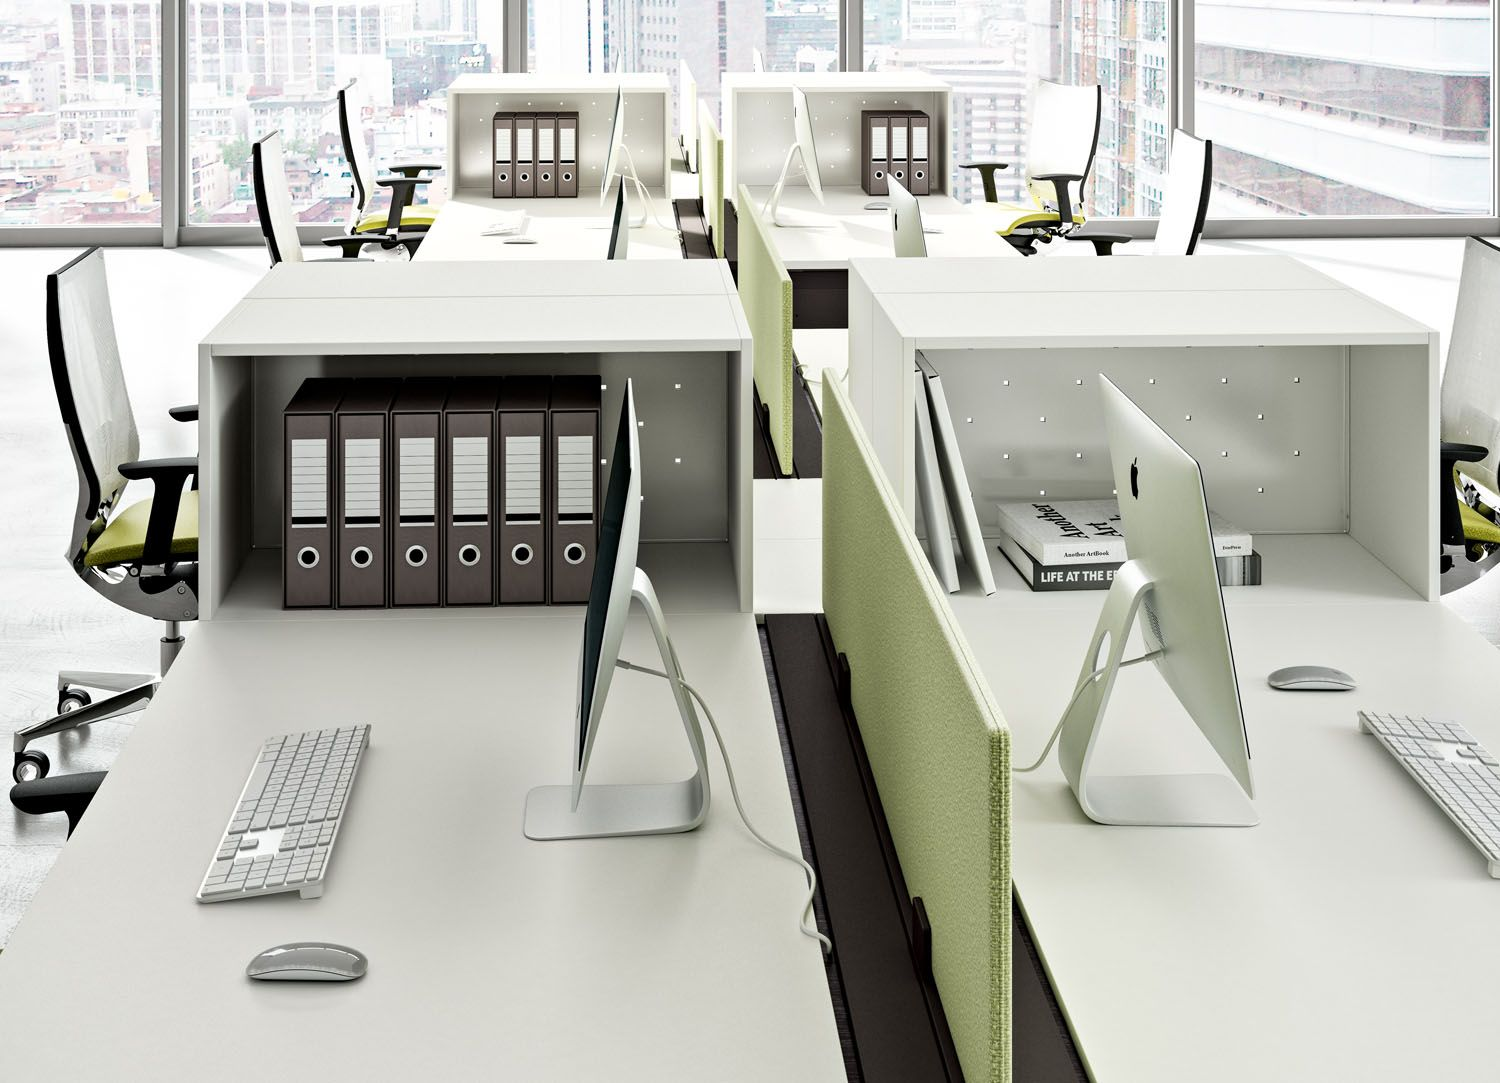 Modular Office Furniture Can Feel Cold We Get It So Encourage